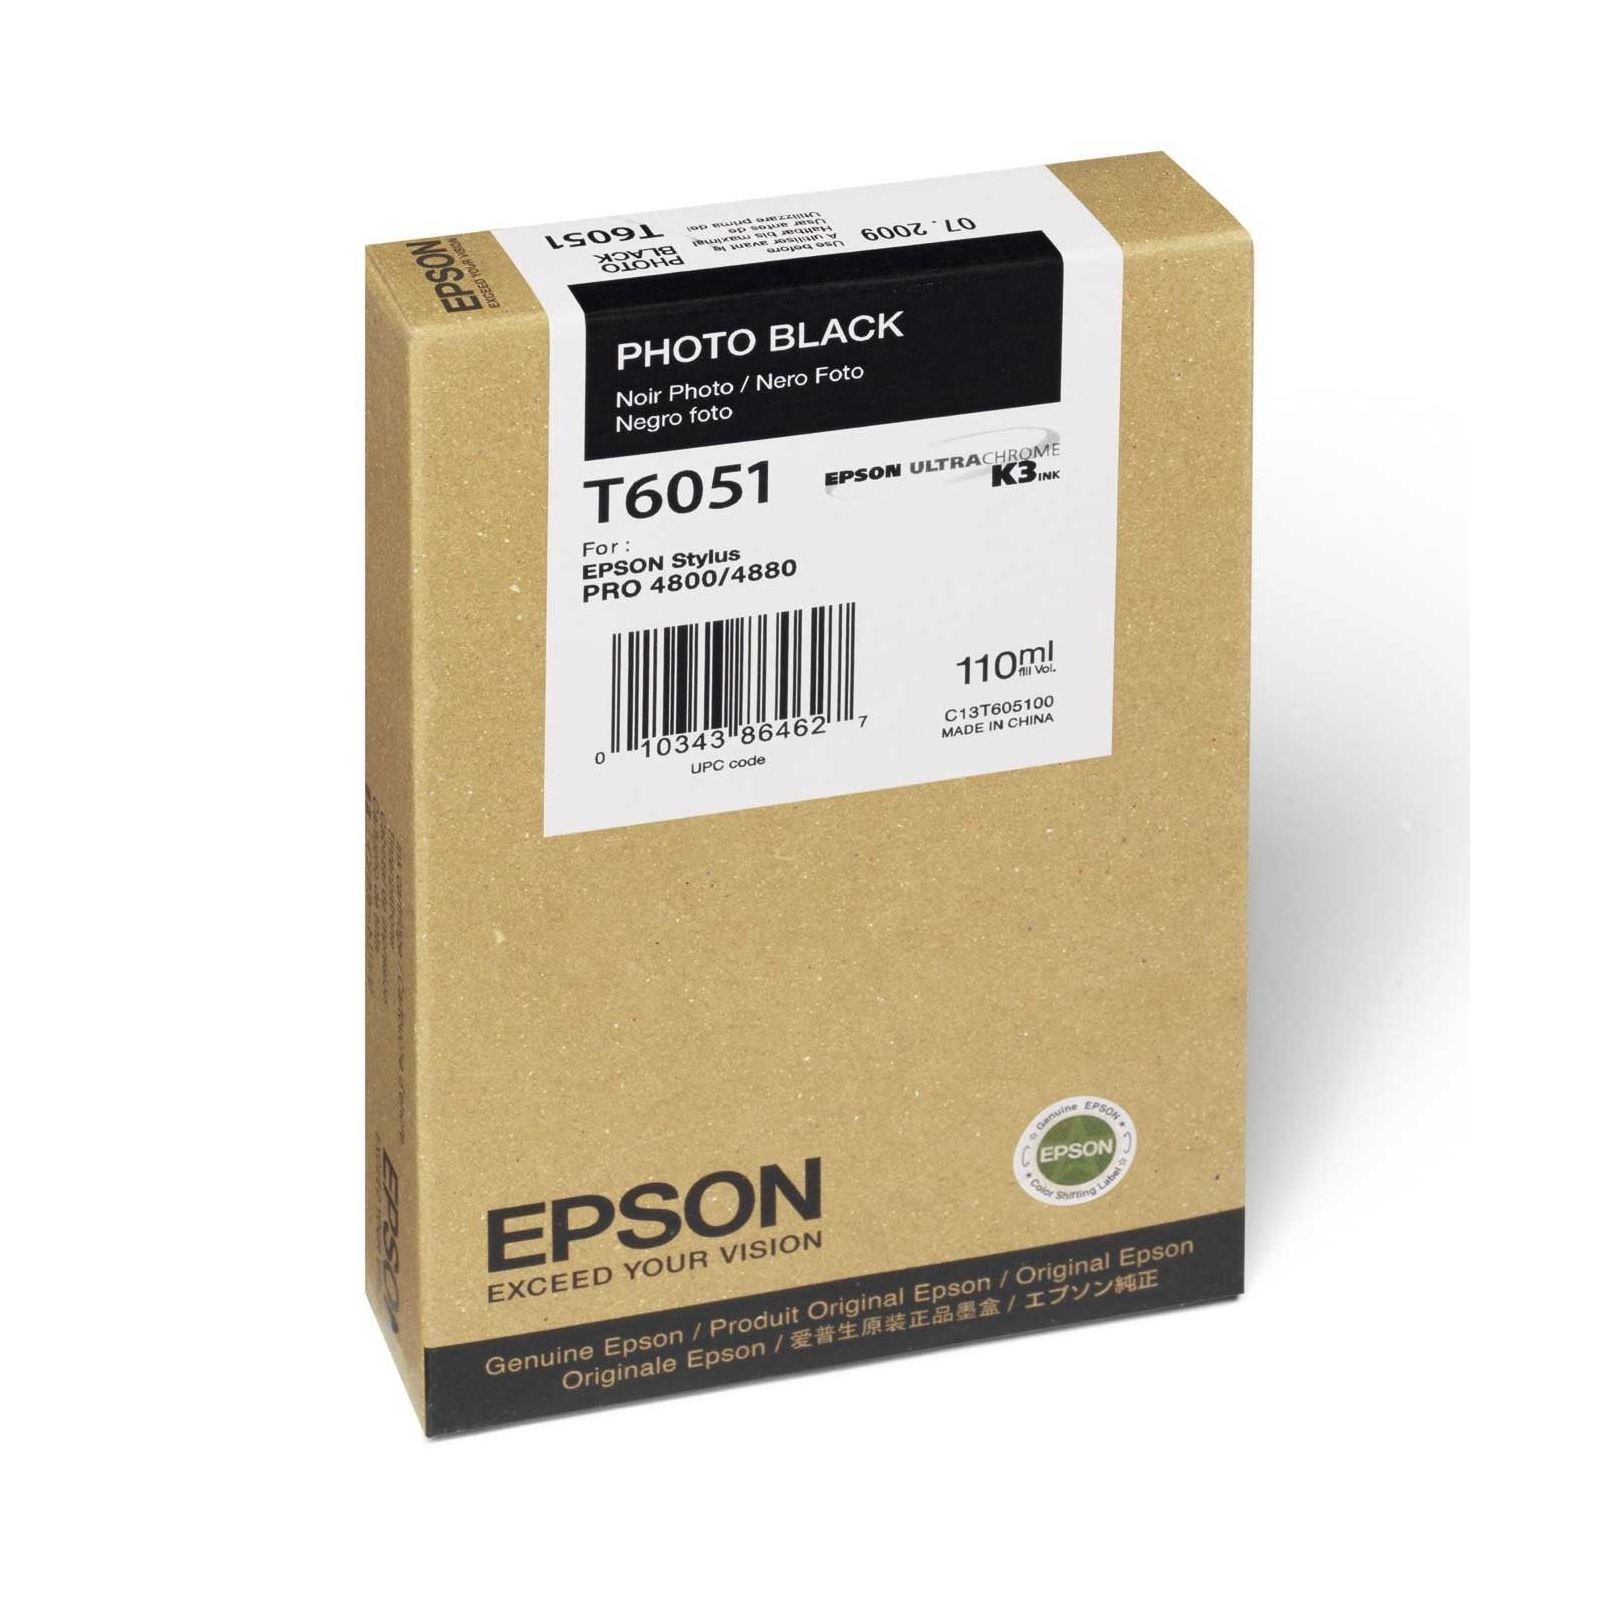 Epson T605 110ml Photo Black